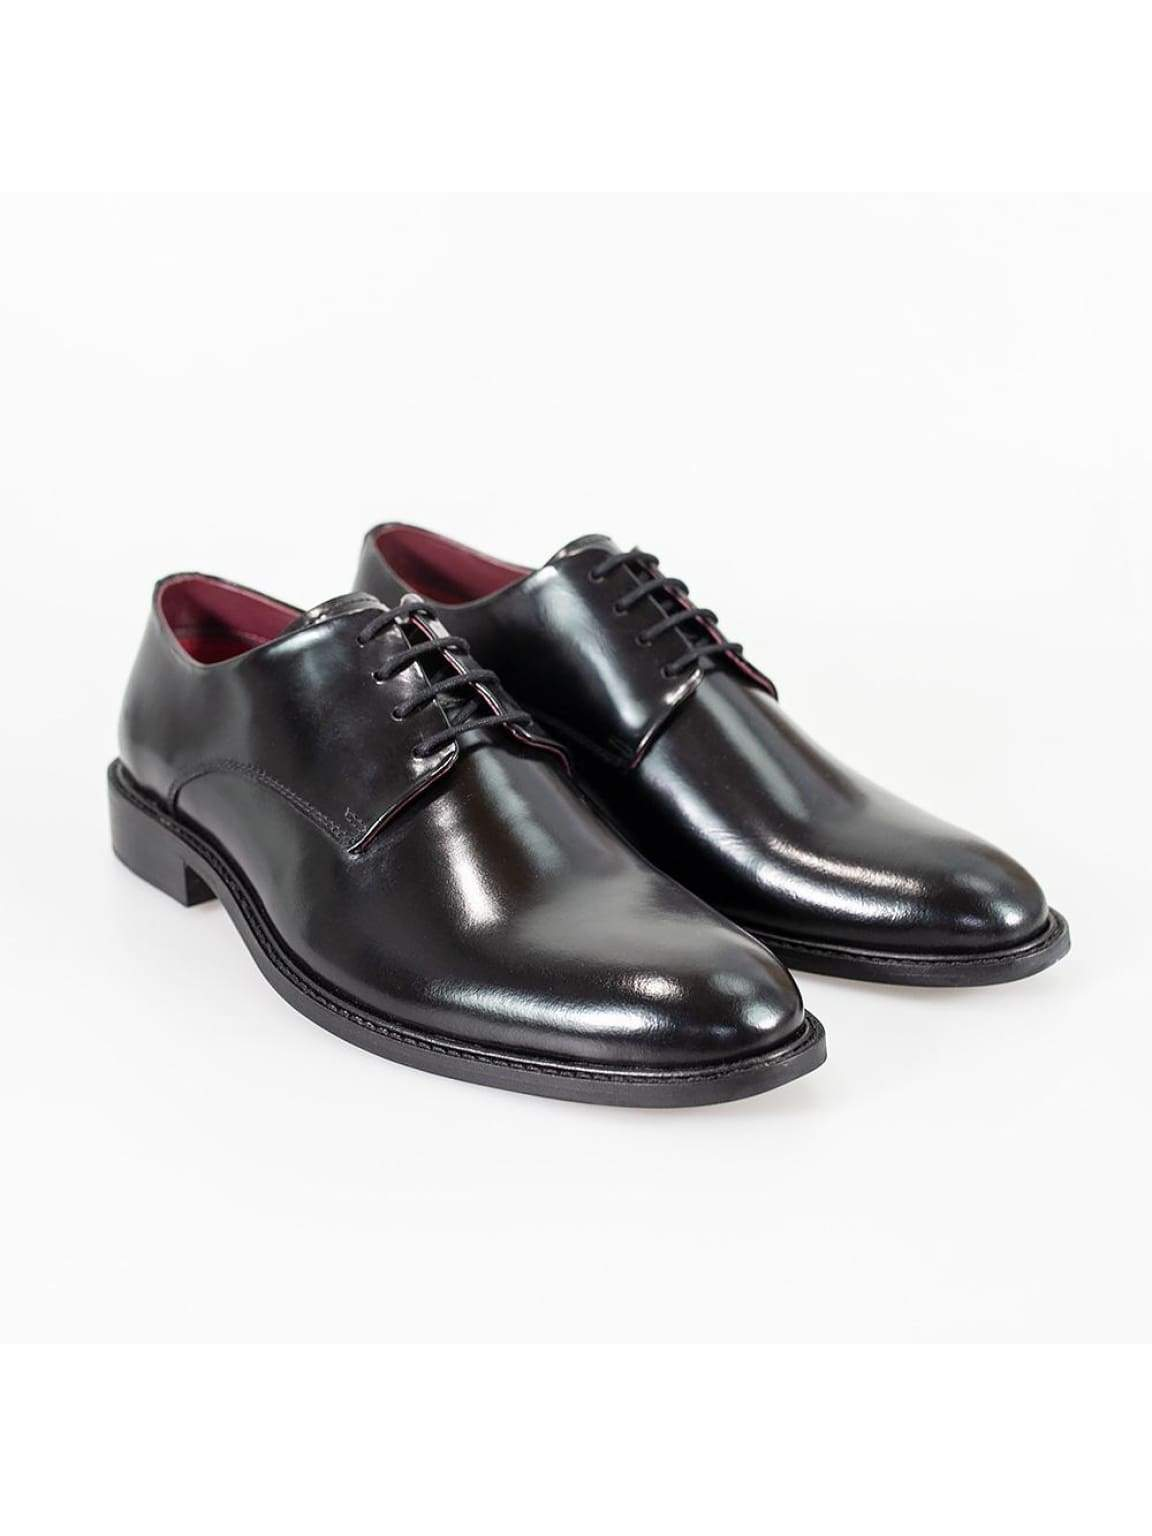 Cavani Foxton Black Shoe - UK7 | EU41 - Shoes